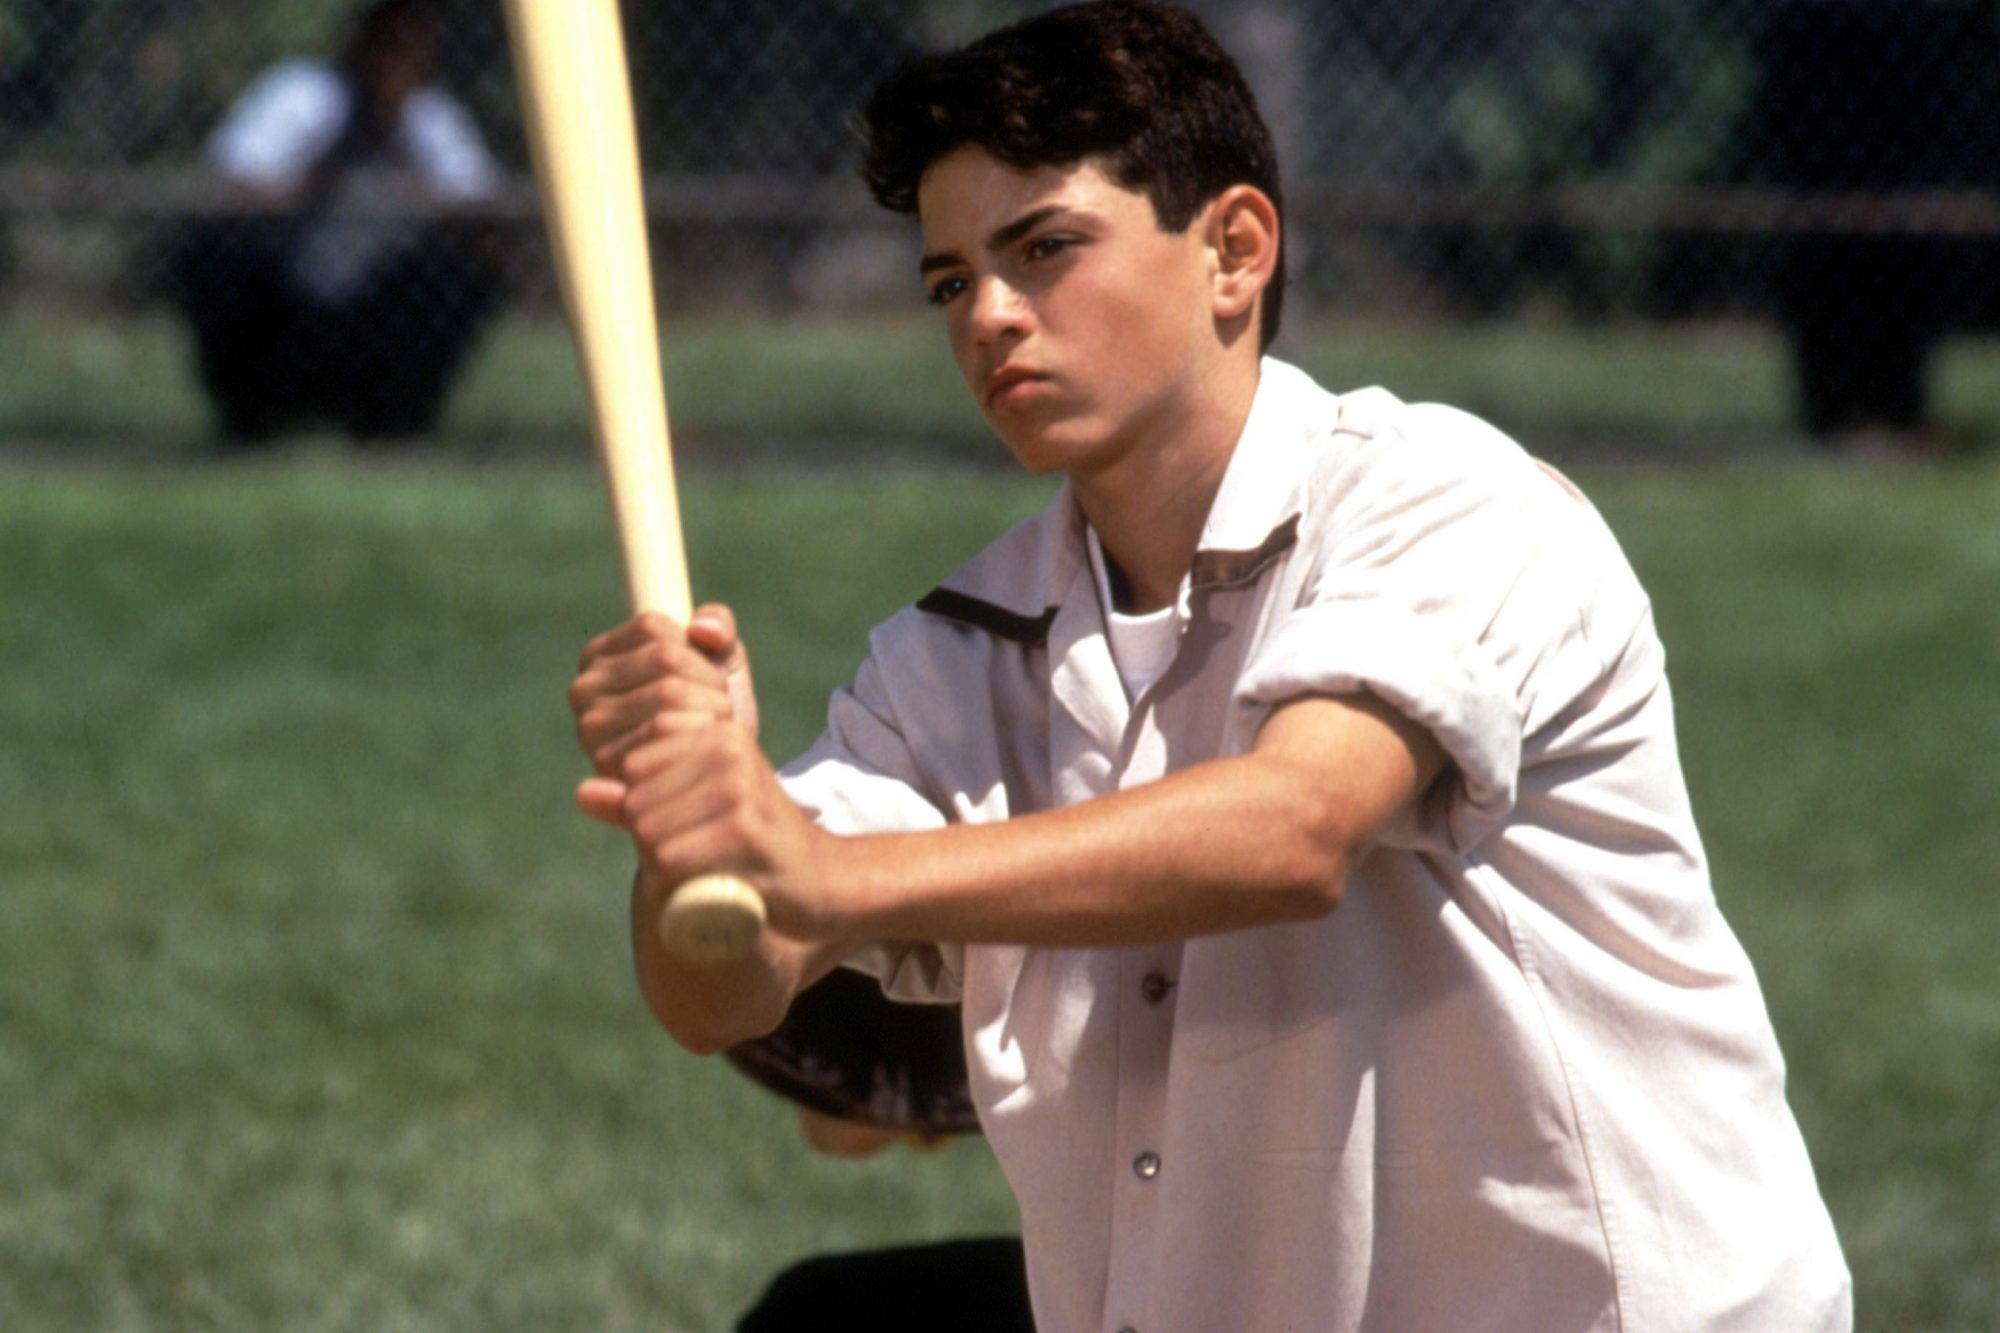 THE SANDLOT, Mike Vitar, 1993, TM and Copyright (c)20th Century Fox Film Corp. All rights reserved.